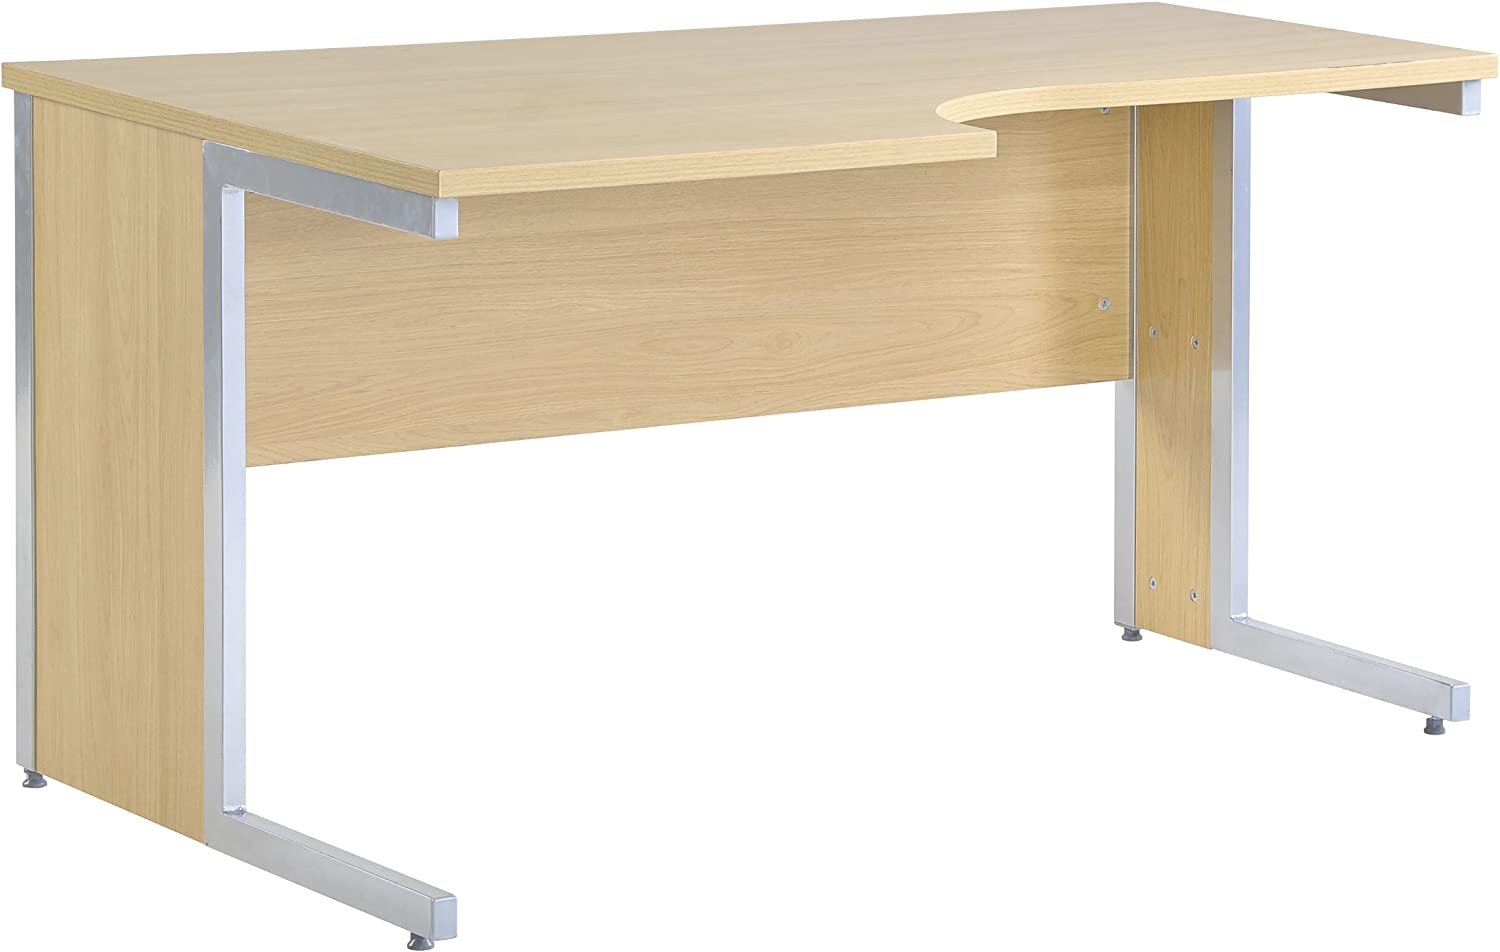 DAMS BEECH L SHAPED OFFICE CORNER DESK /& PEDESTAL DRAWERS GRADE B 160 X 160 CM